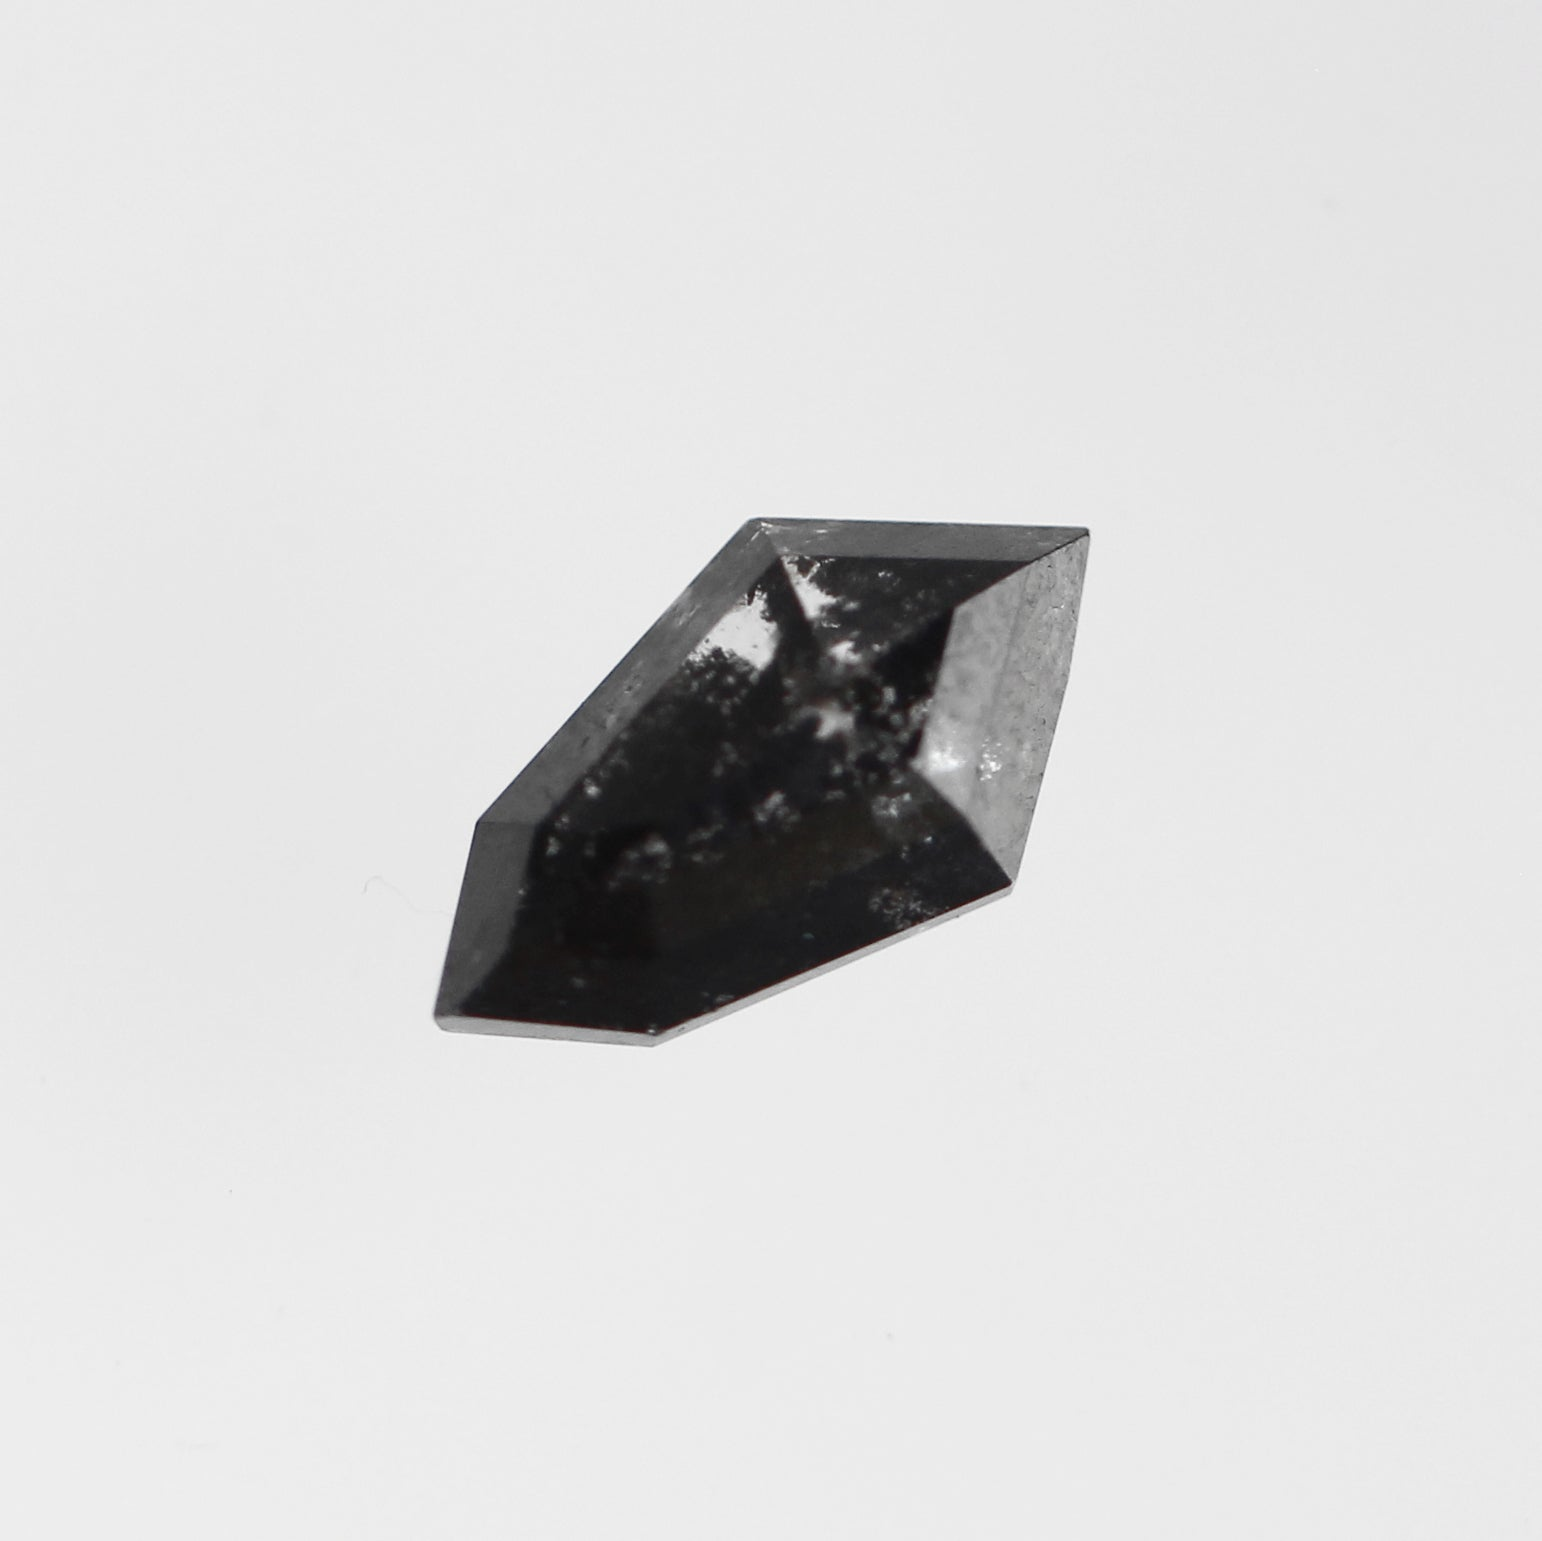 2.77 Carat Geometric Shield Celestial Diamond-Inventory Code GRB277 - Celestial Diamonds ® by Midwinter Co.